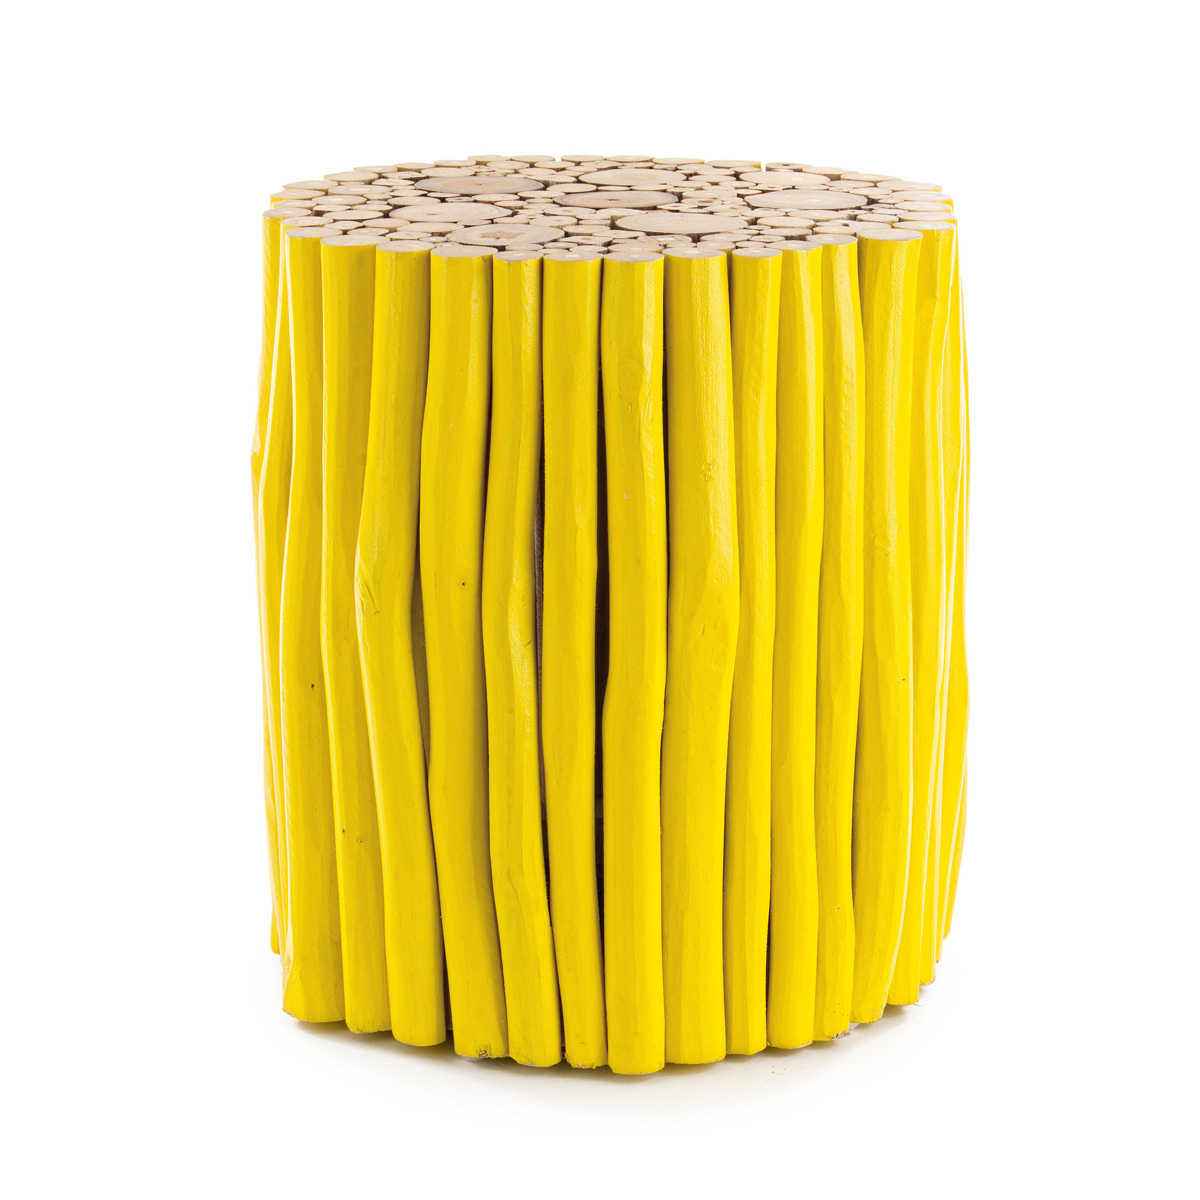 Photos 1: Bizzotto Wooden table d. 38 - yellow 0680441